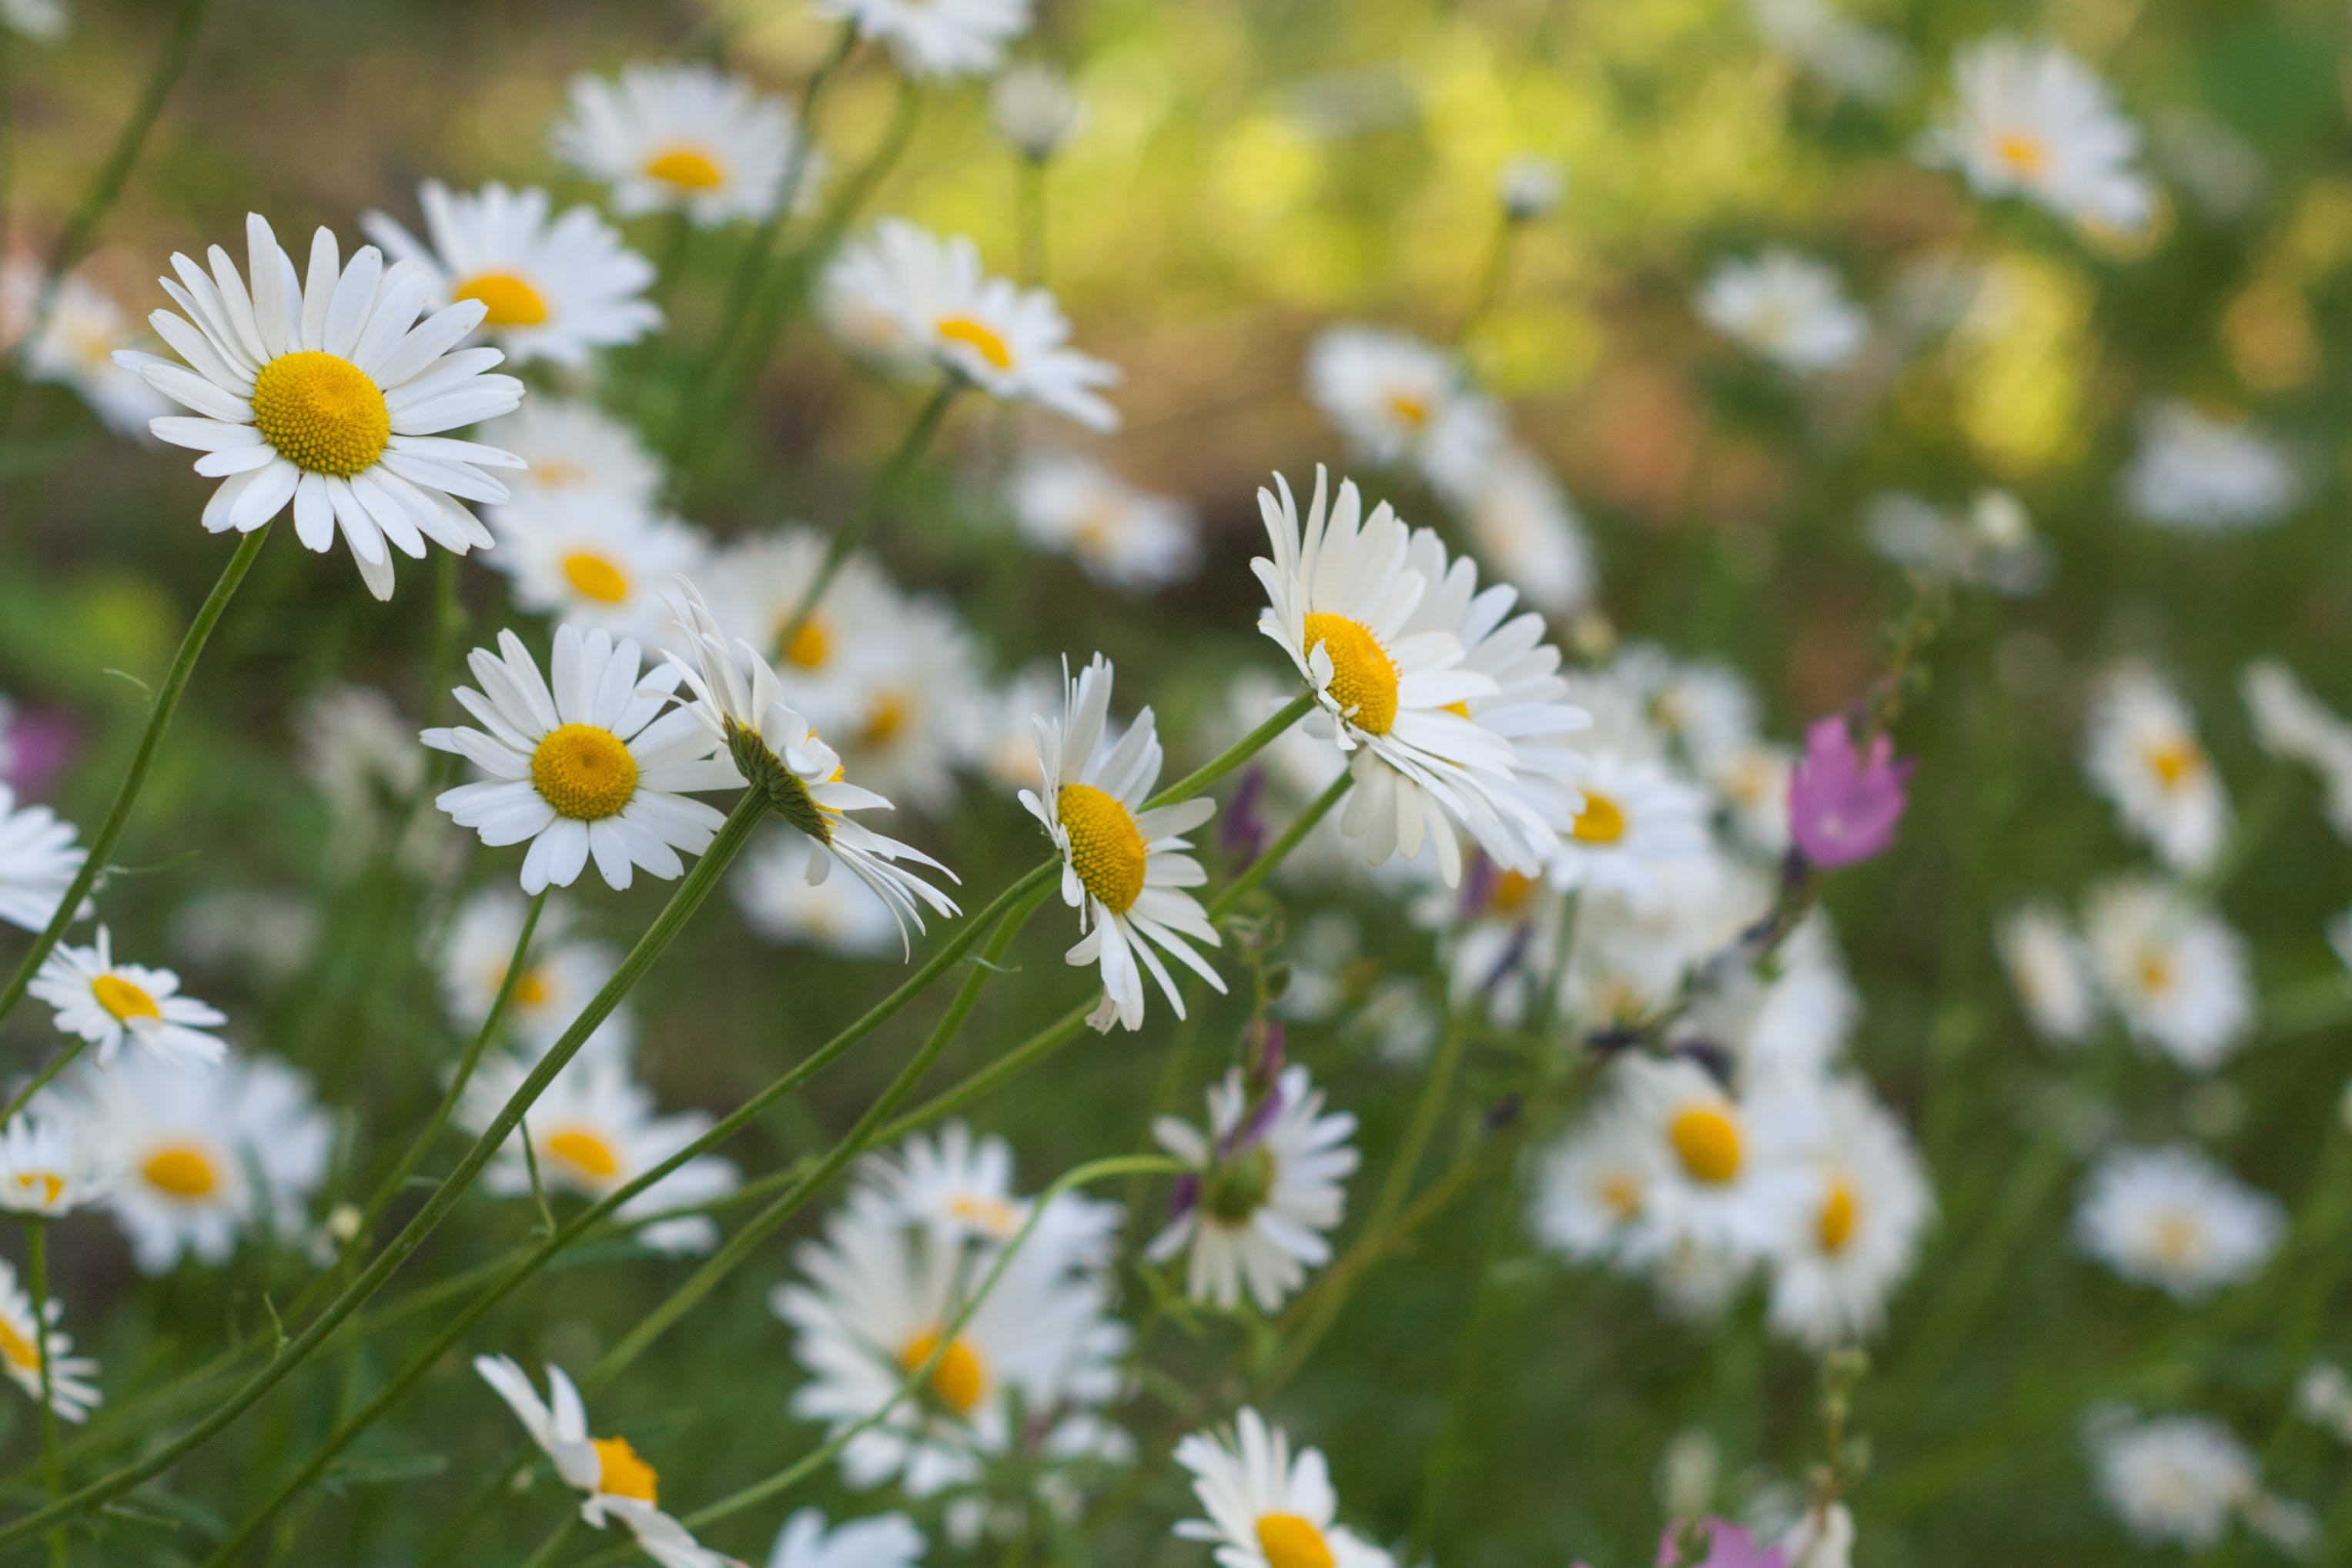 Free stock photo of daisies, daisy, early summer, field of flowers